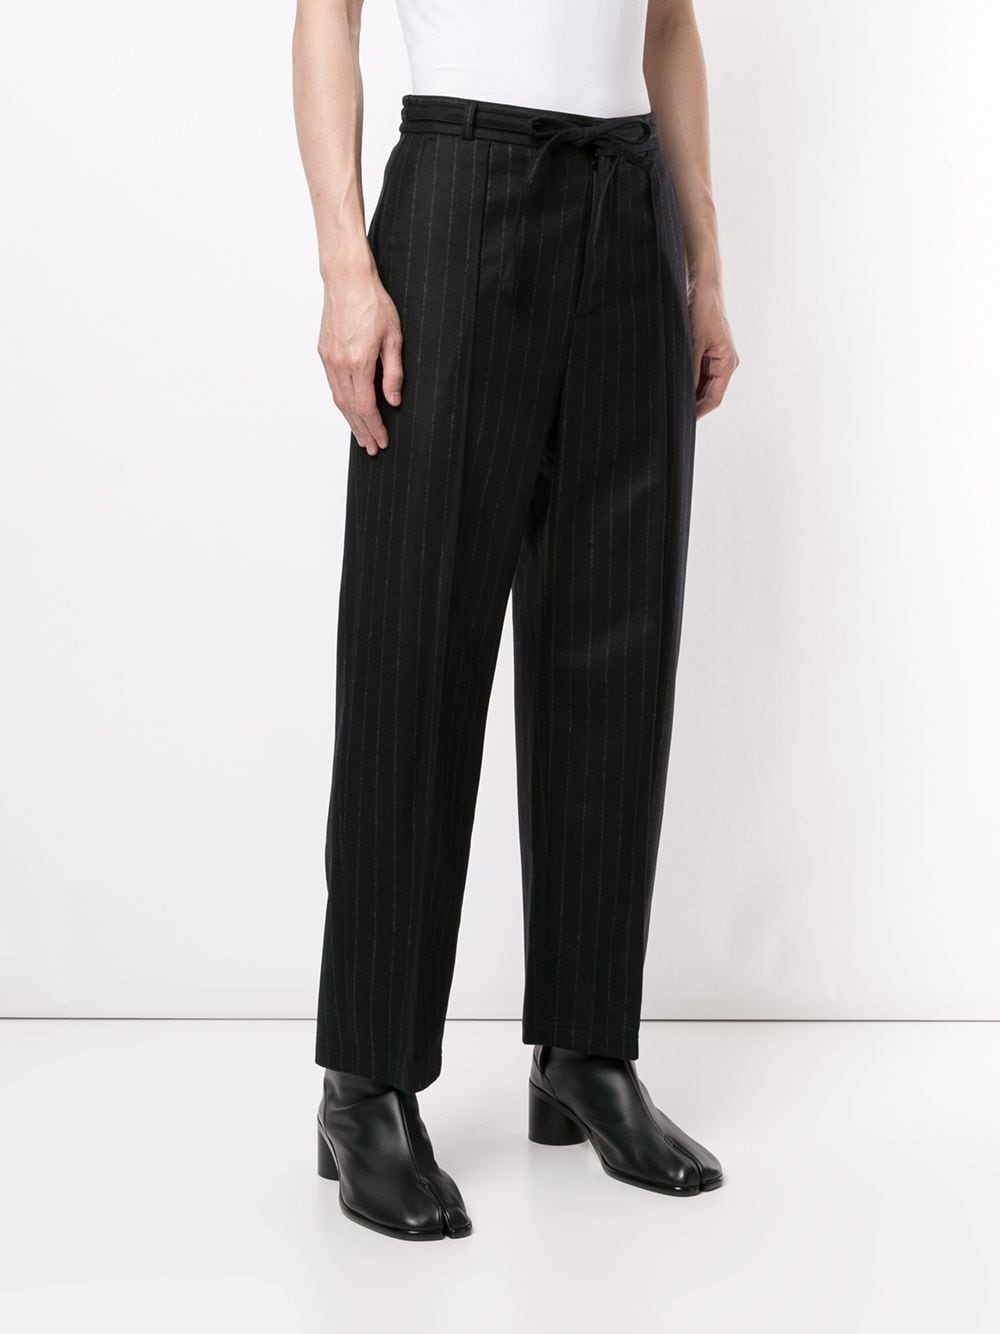 MAISON MARGIELA MEN WOOL PINSTRIPE PANTS